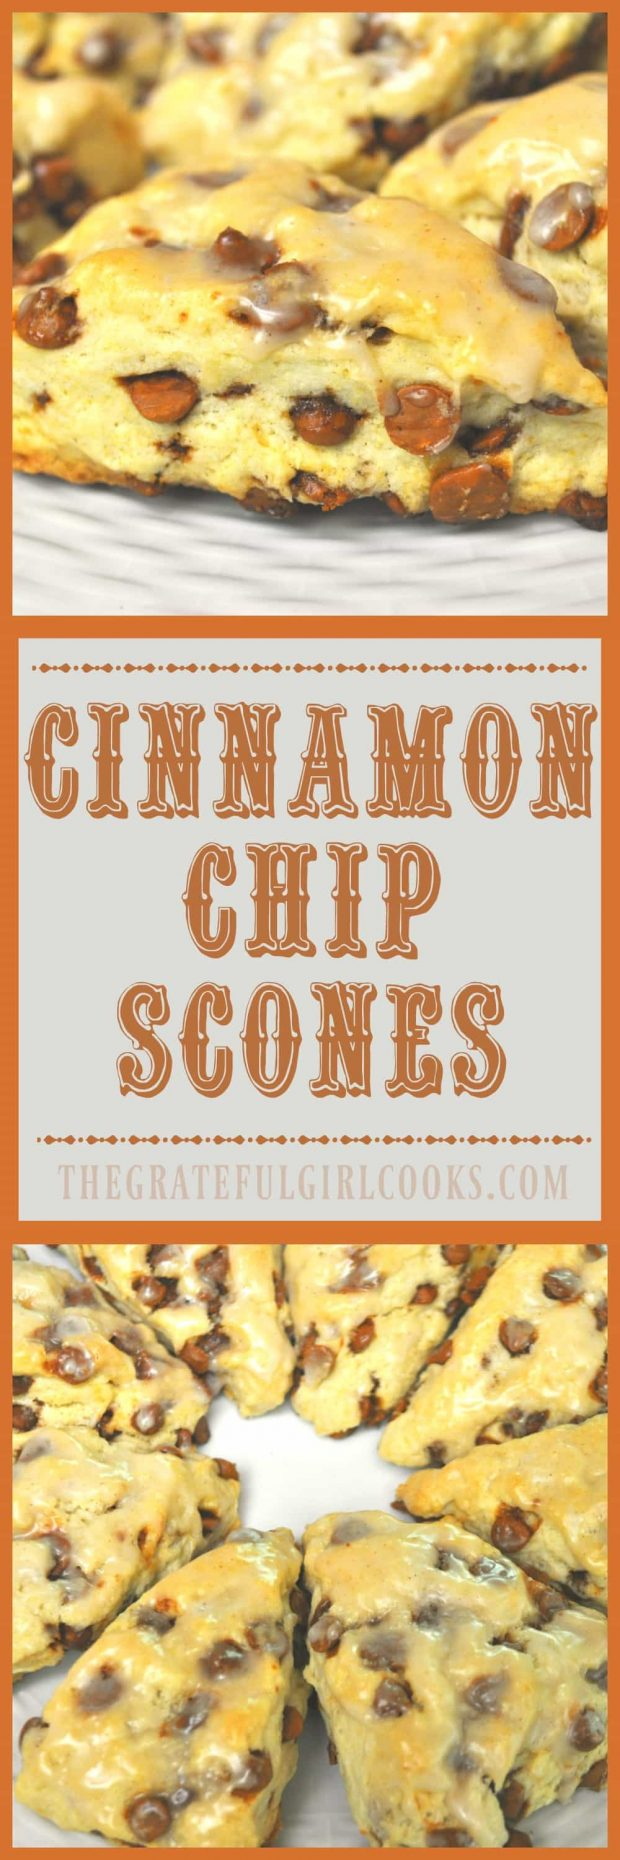 Cinnamon Chip Scones / The Grateful Girl Cooks! Make 16 absolutely delicious Cinnamon Chip Scones in under 30 minutes for a fraction of the cost of buying them at a coffeehouse!